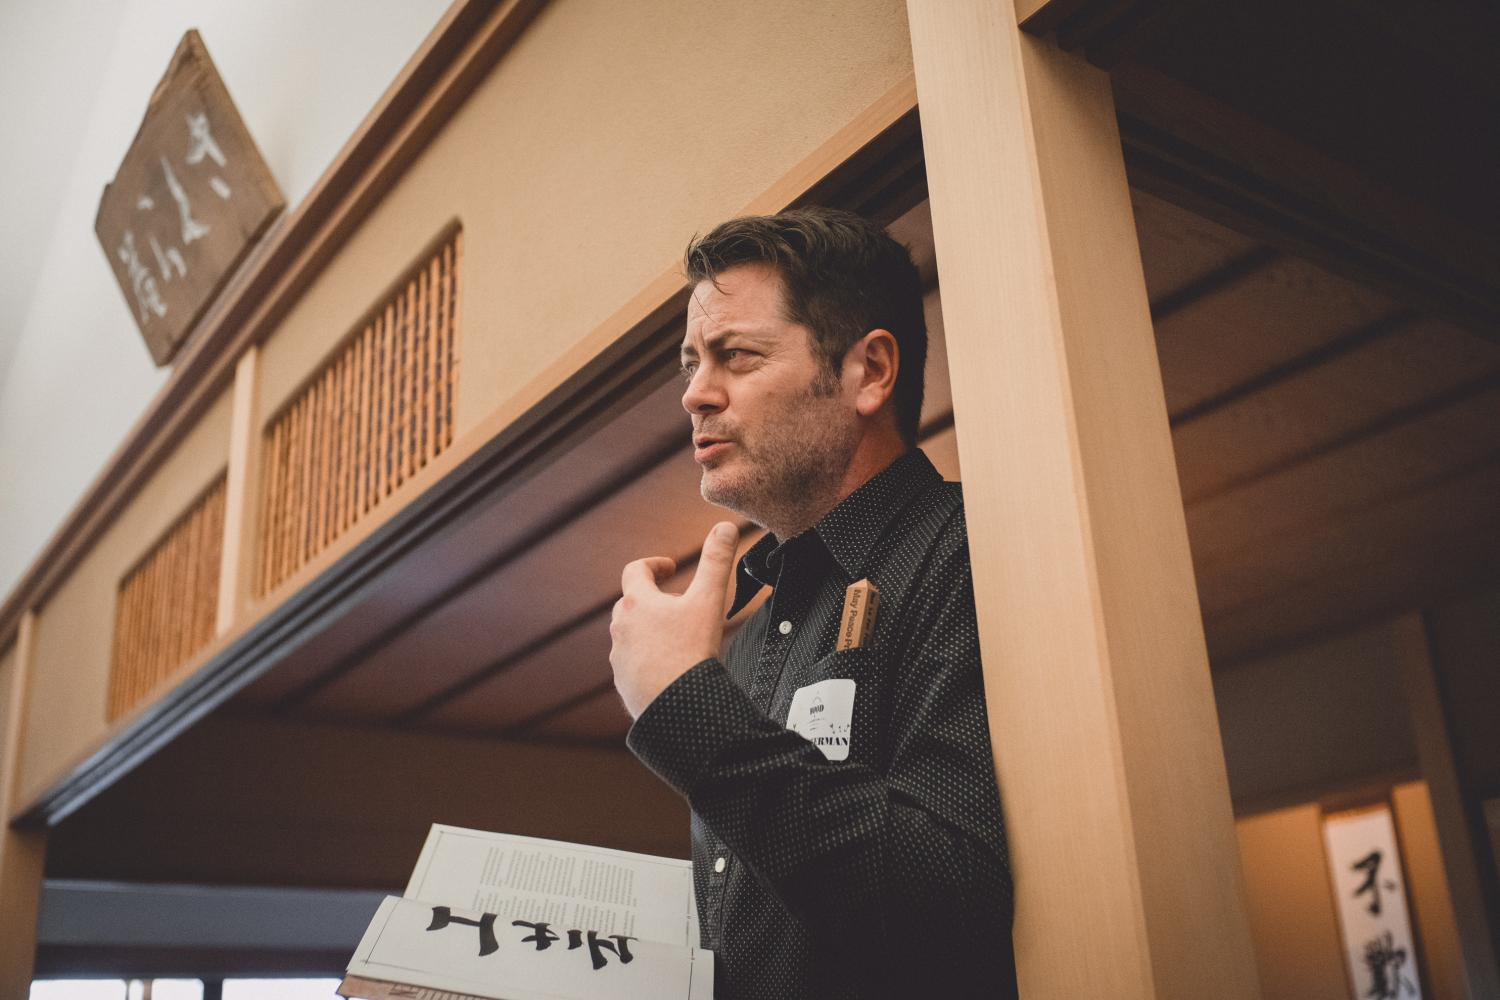 Nick Offerman at the Japan House during one of his many visits to the University. Offerman will speak Saturday at the Main Commencement.